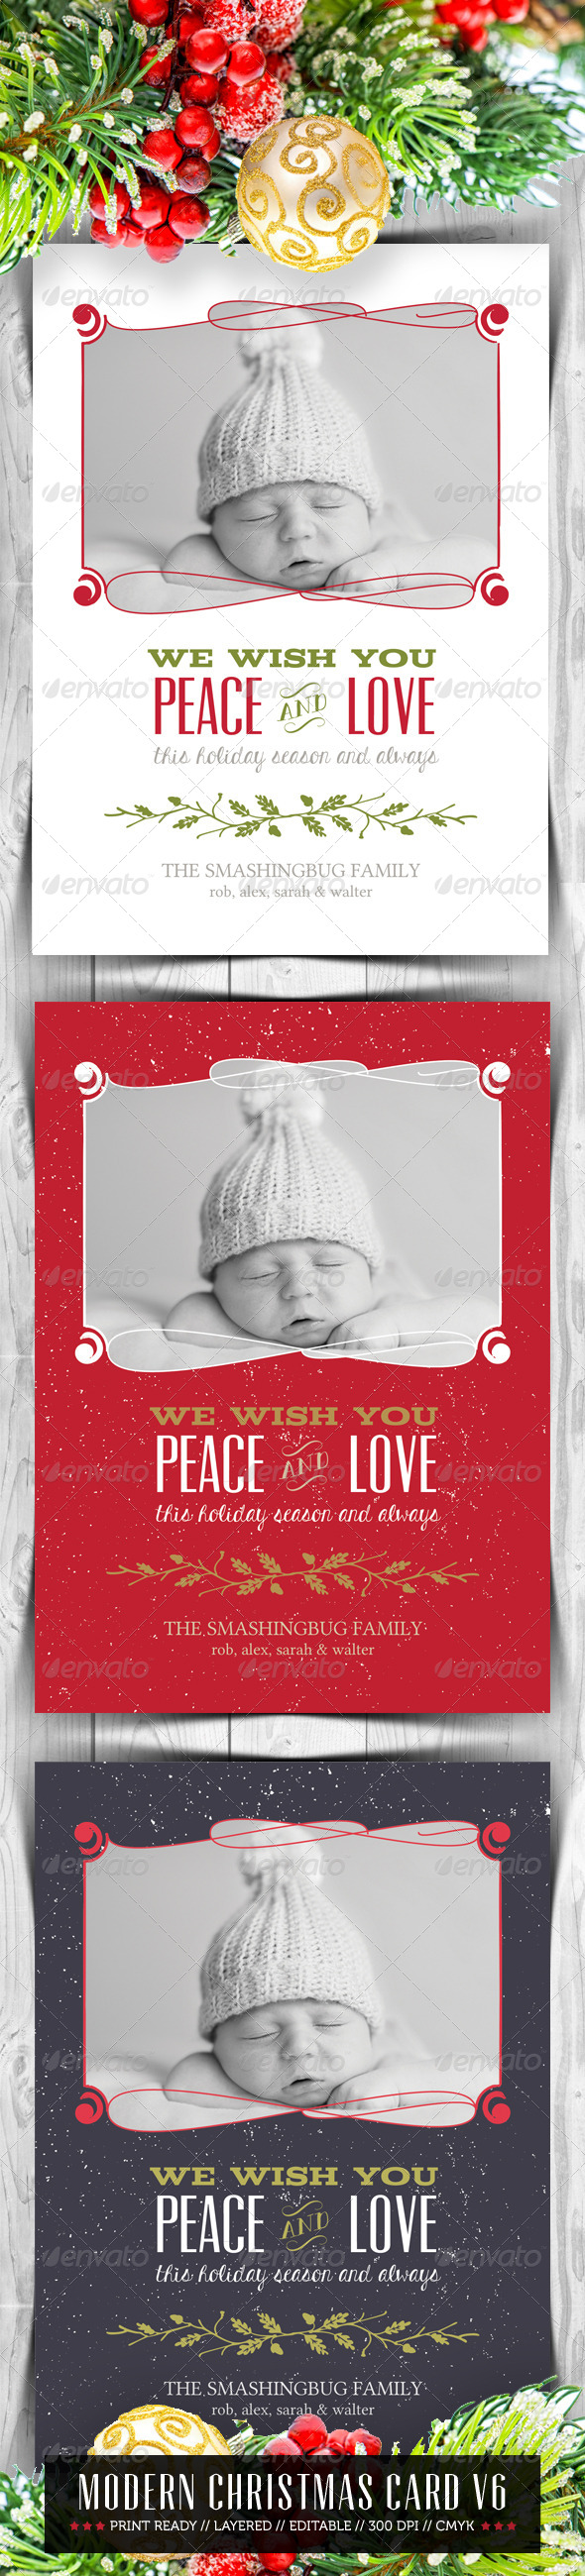 Modern Christmas Card V6 - Holiday Greeting Cards